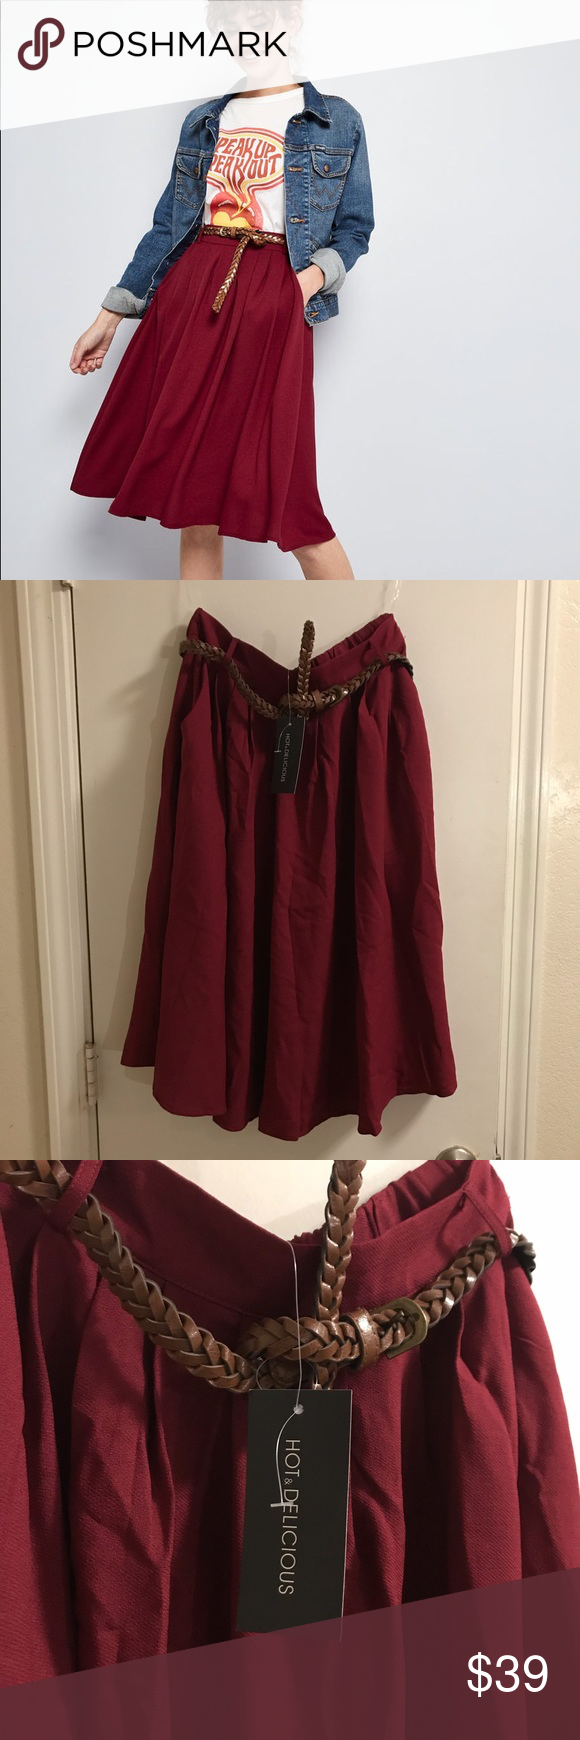 fef280c04 ModCloth Breathtaking Tiger Lilies Skirt Merlot Sm Brand new with tags! Breathtaking  Tiger Lilies Skirt